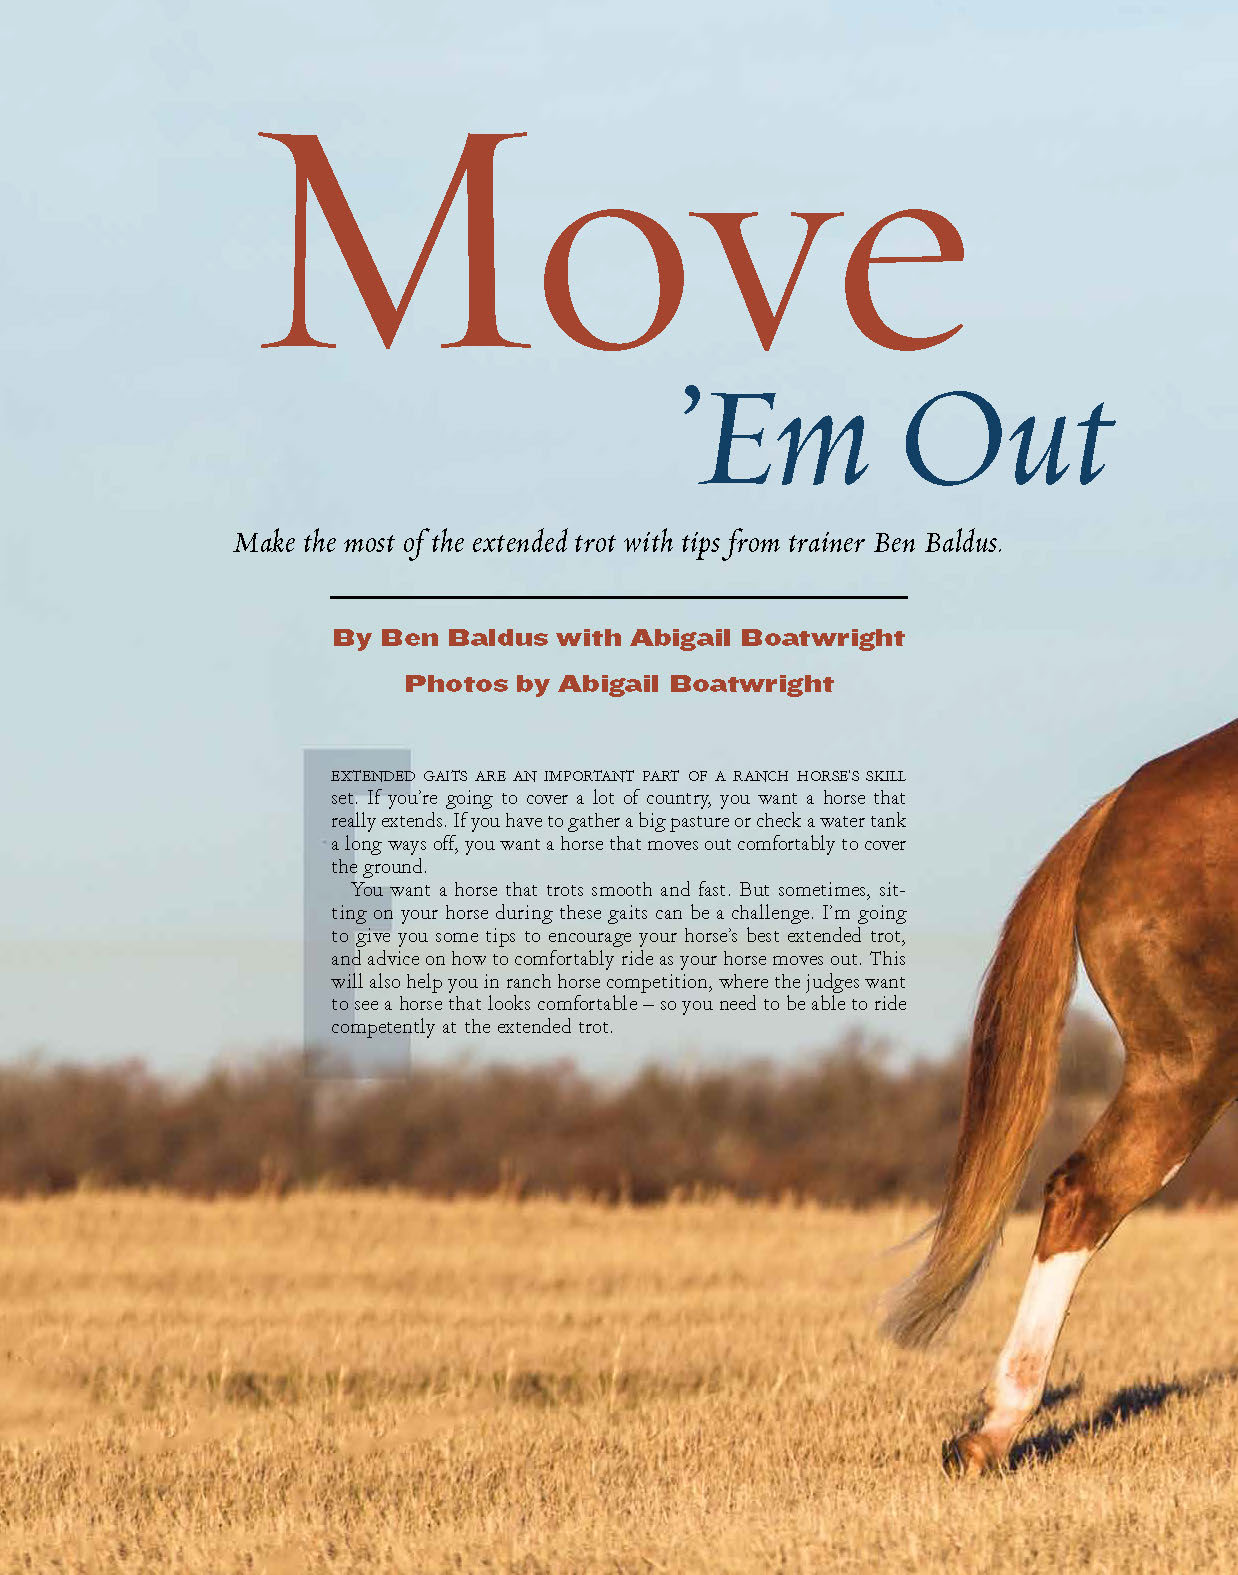 Move Em Out_Page_1.jpg